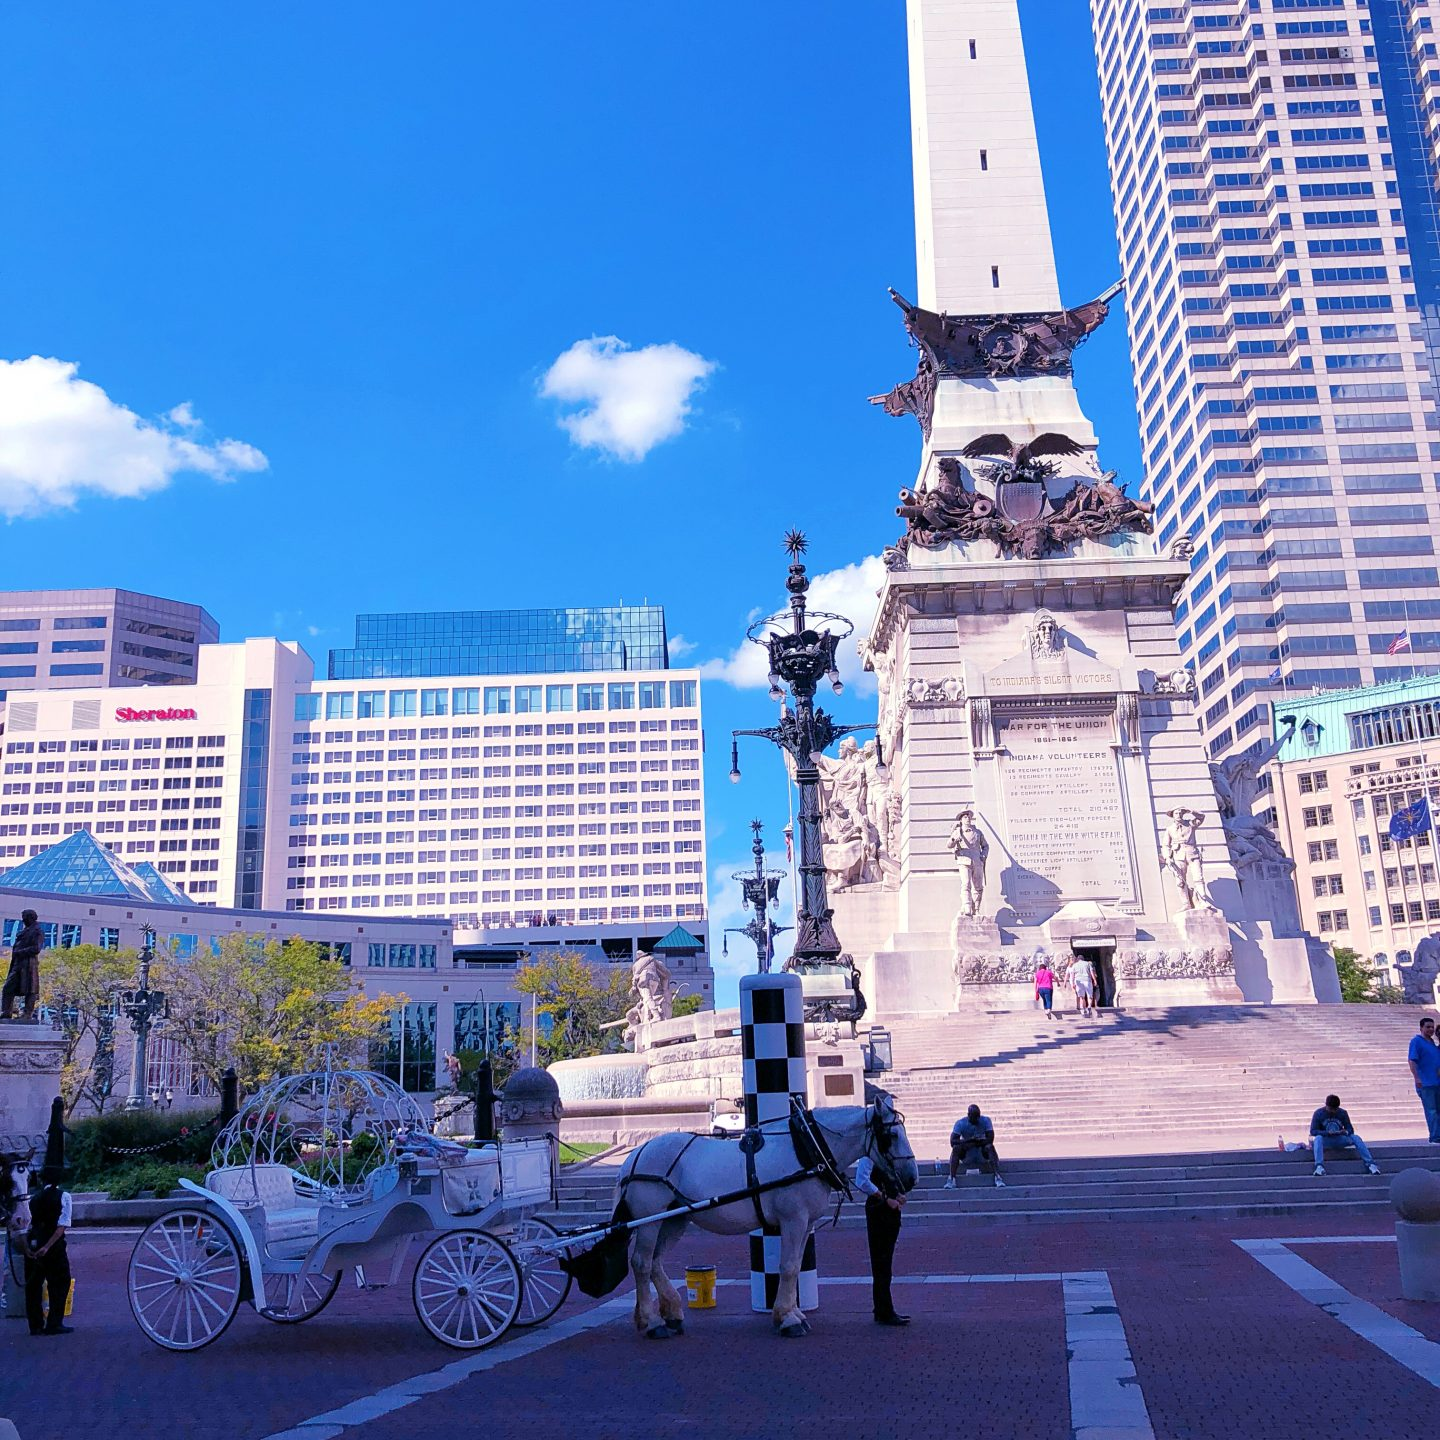 hy Indianapolis Isn't Just A Fly Over City (Travel Guide), Indianapolis travel guide, indiana travel guide, downtown indianapolis